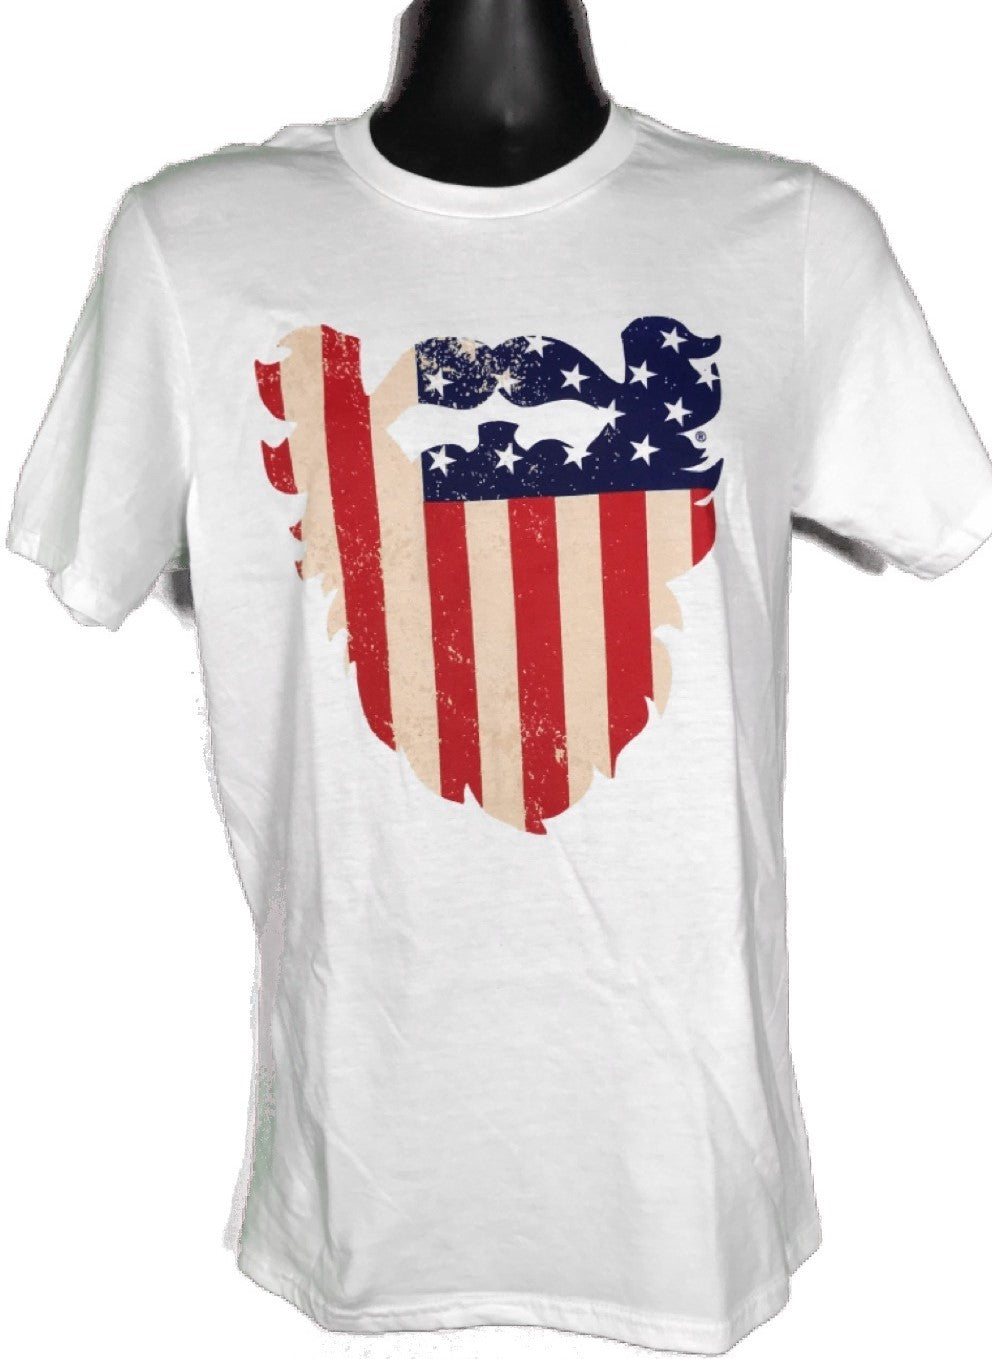 Flag Beards Shirt